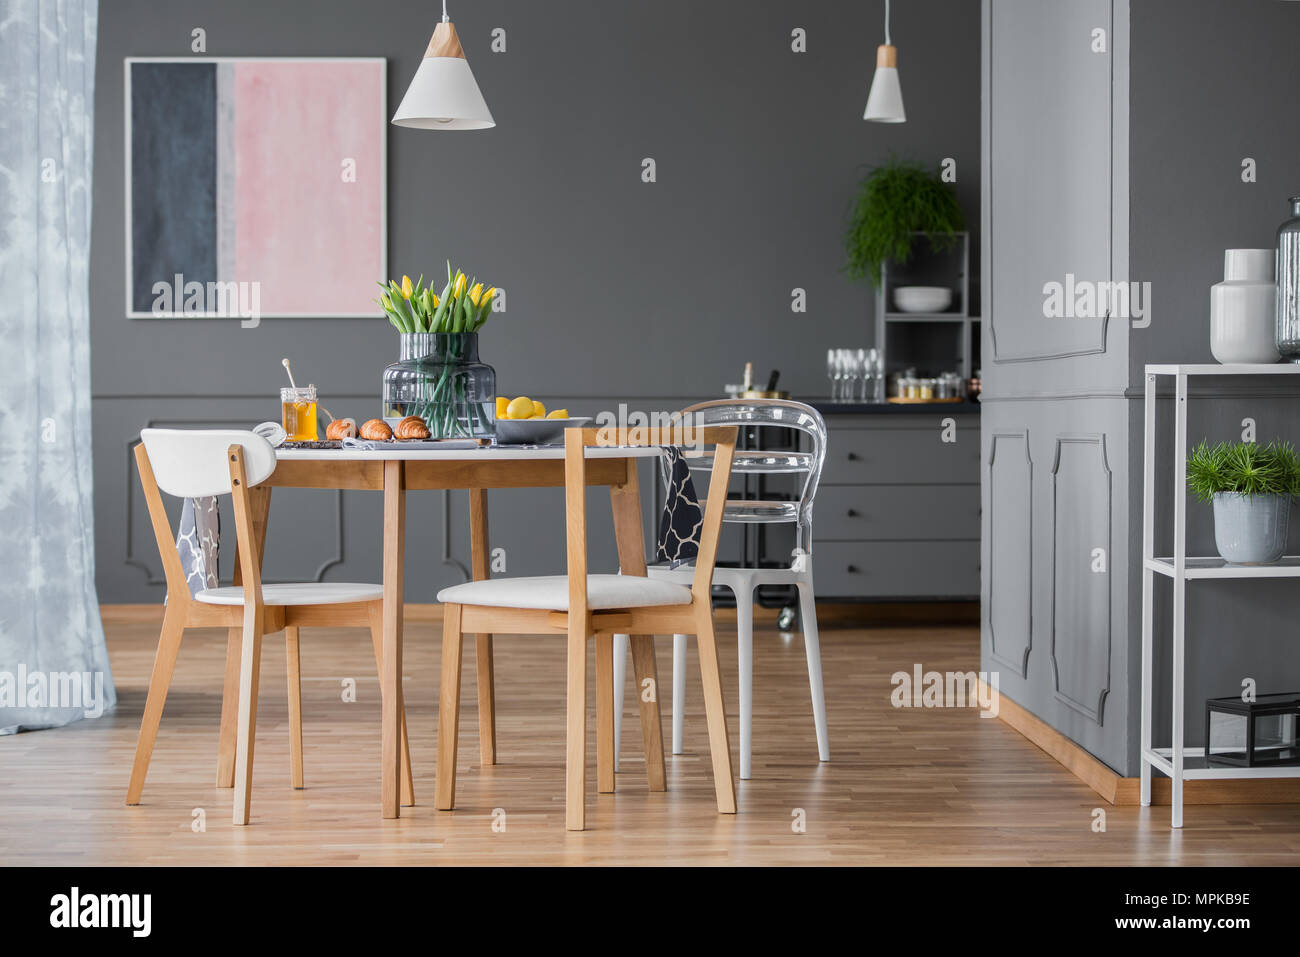 Pink And Navy Blue Painting In Dark Dining Room Interior With Wooden Table  And Chairs